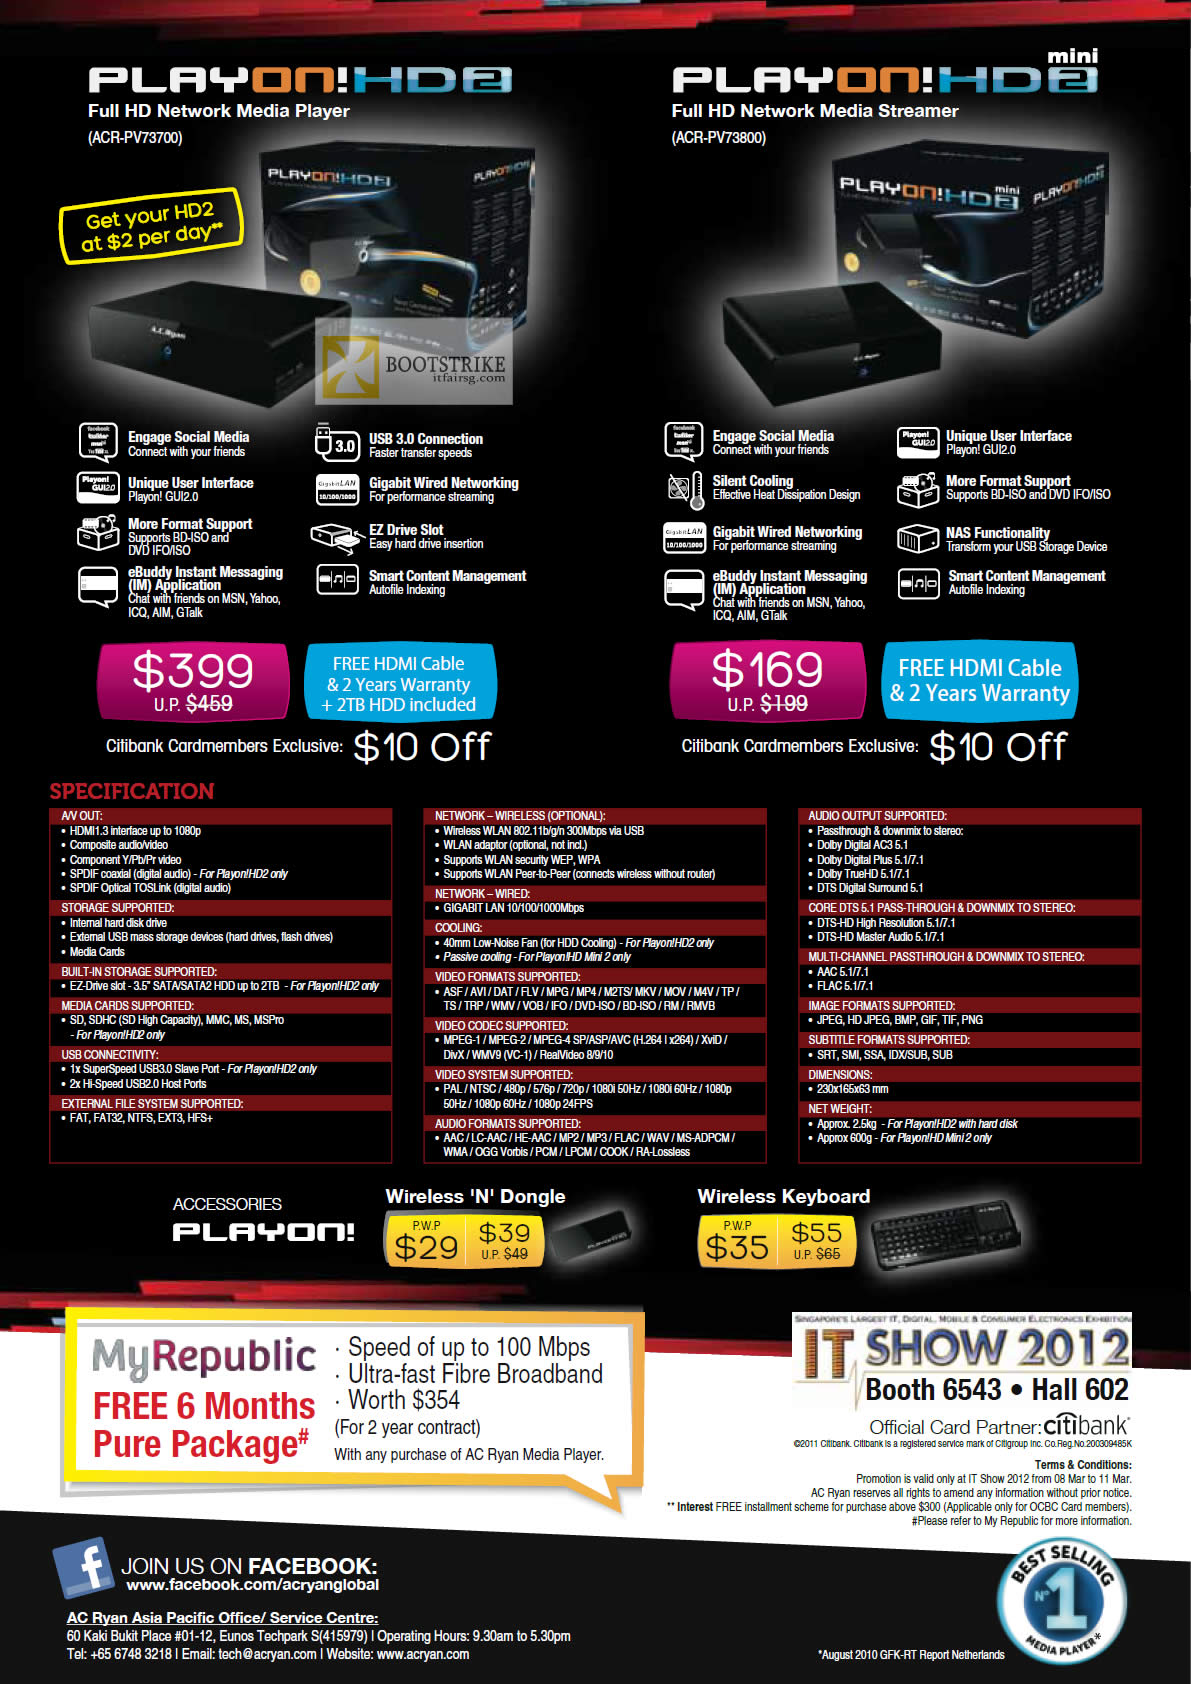 IT SHOW 2012 price list image brochure of AC Ryan Media Players PlayOn HD2, PlayOn HD2 Mini, Specifications, Accessories, MyRepublic, Wireless Dongle, Keyboard